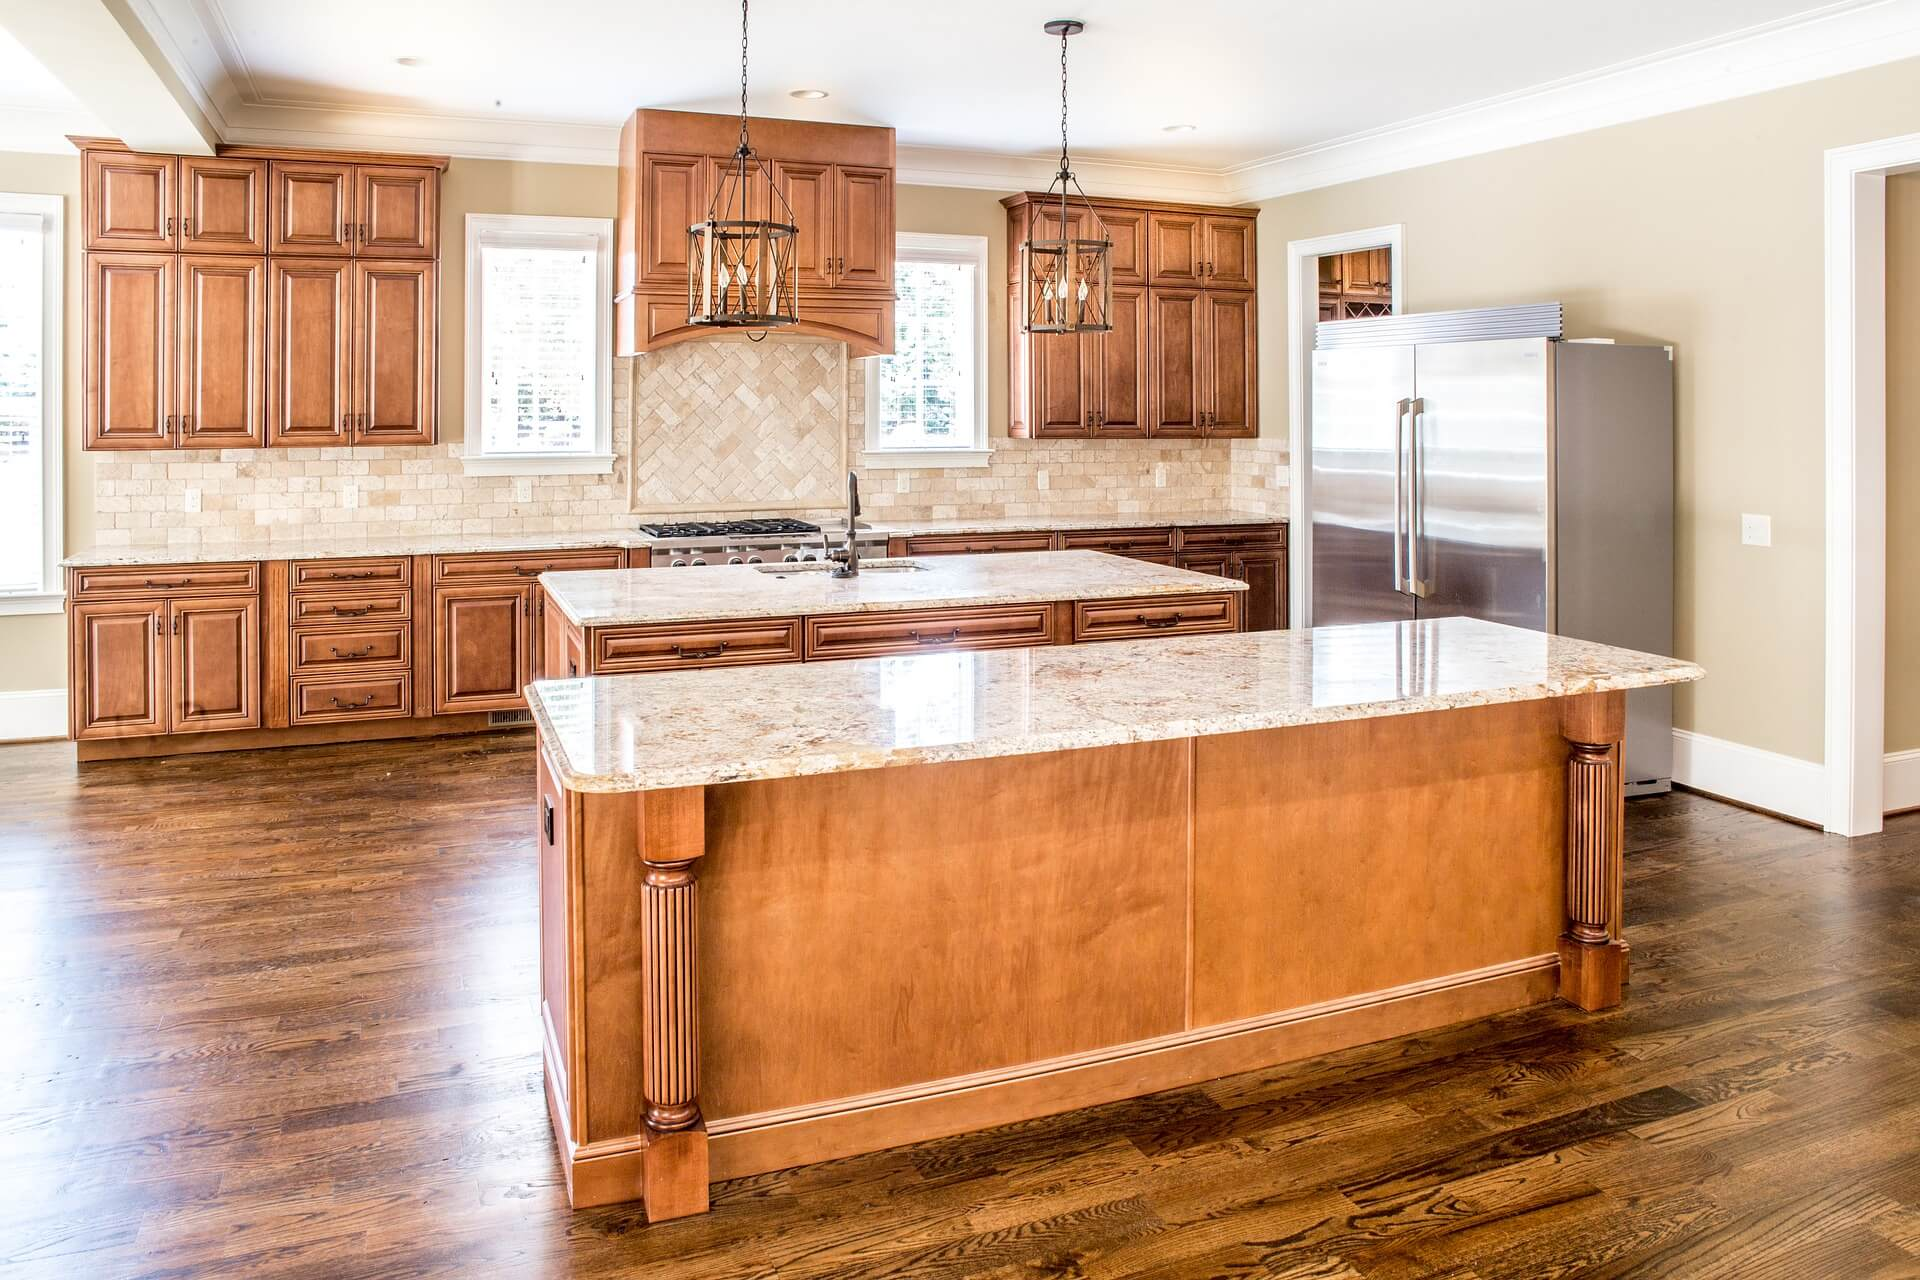 Kitchen Cabinetry - SoFlo Kitchen Remodeling & Custom Cabinet Installation - backsplashes, flooring, countertops